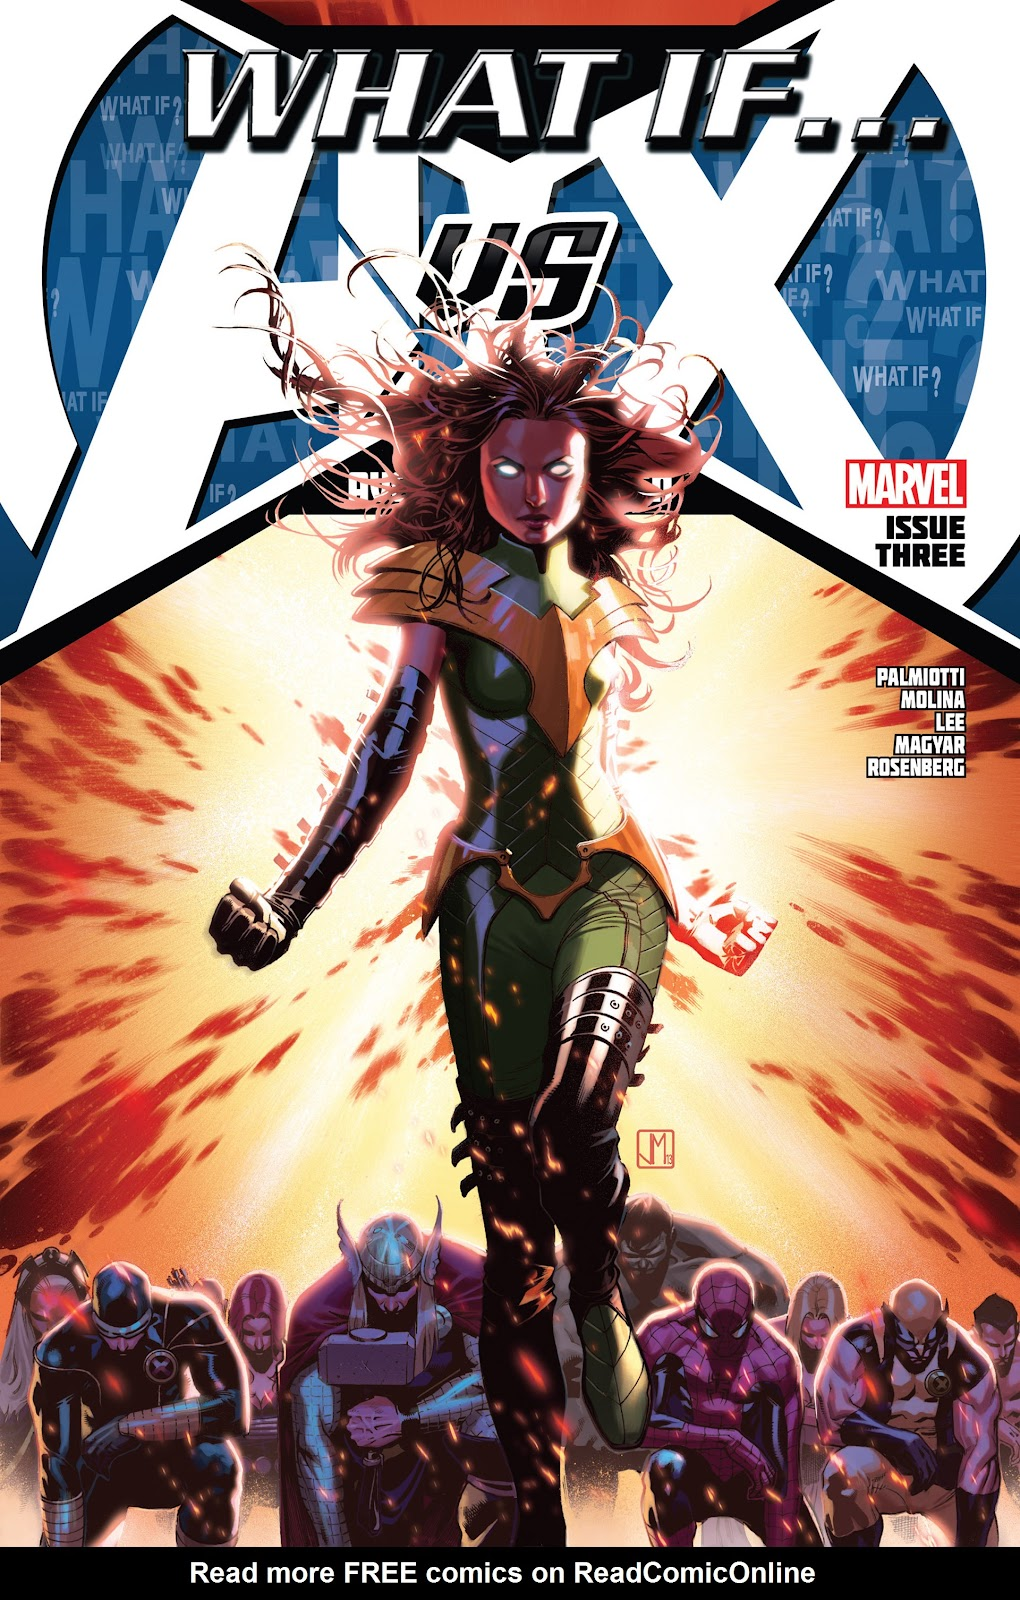 Read online What If? AvX comic -  Issue #3 - 1